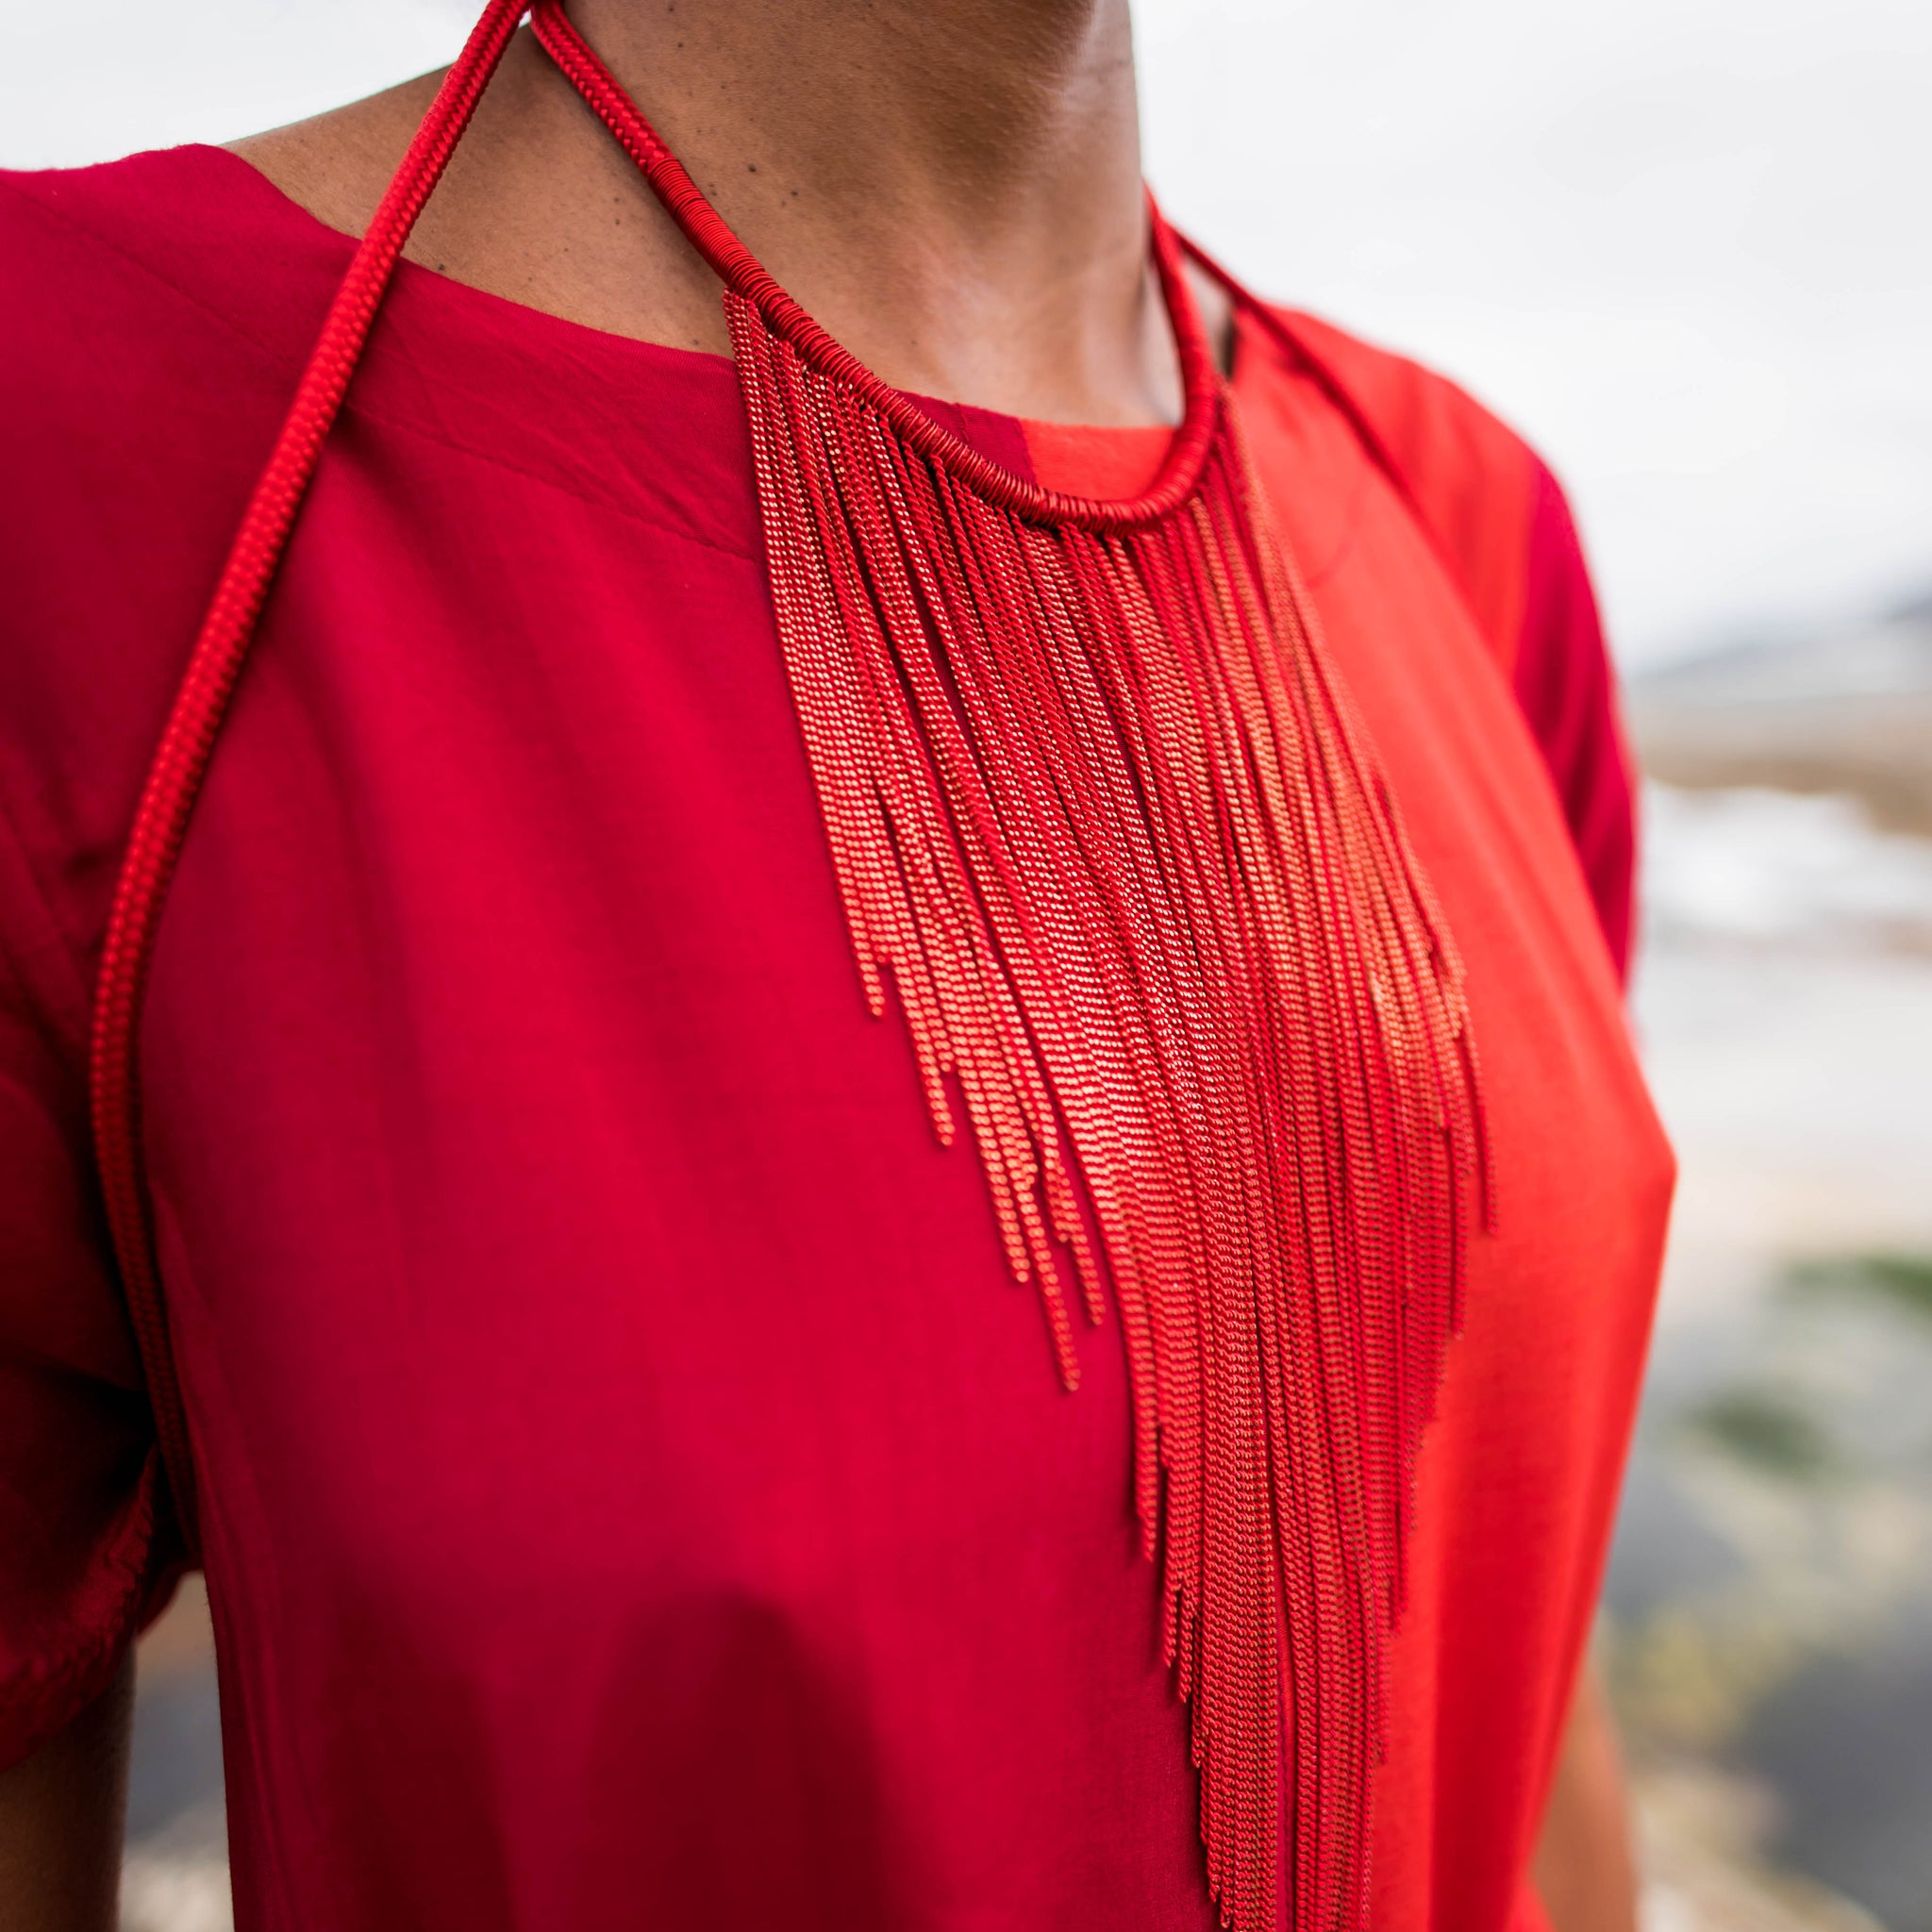 Rope Fringed 3 way necklace